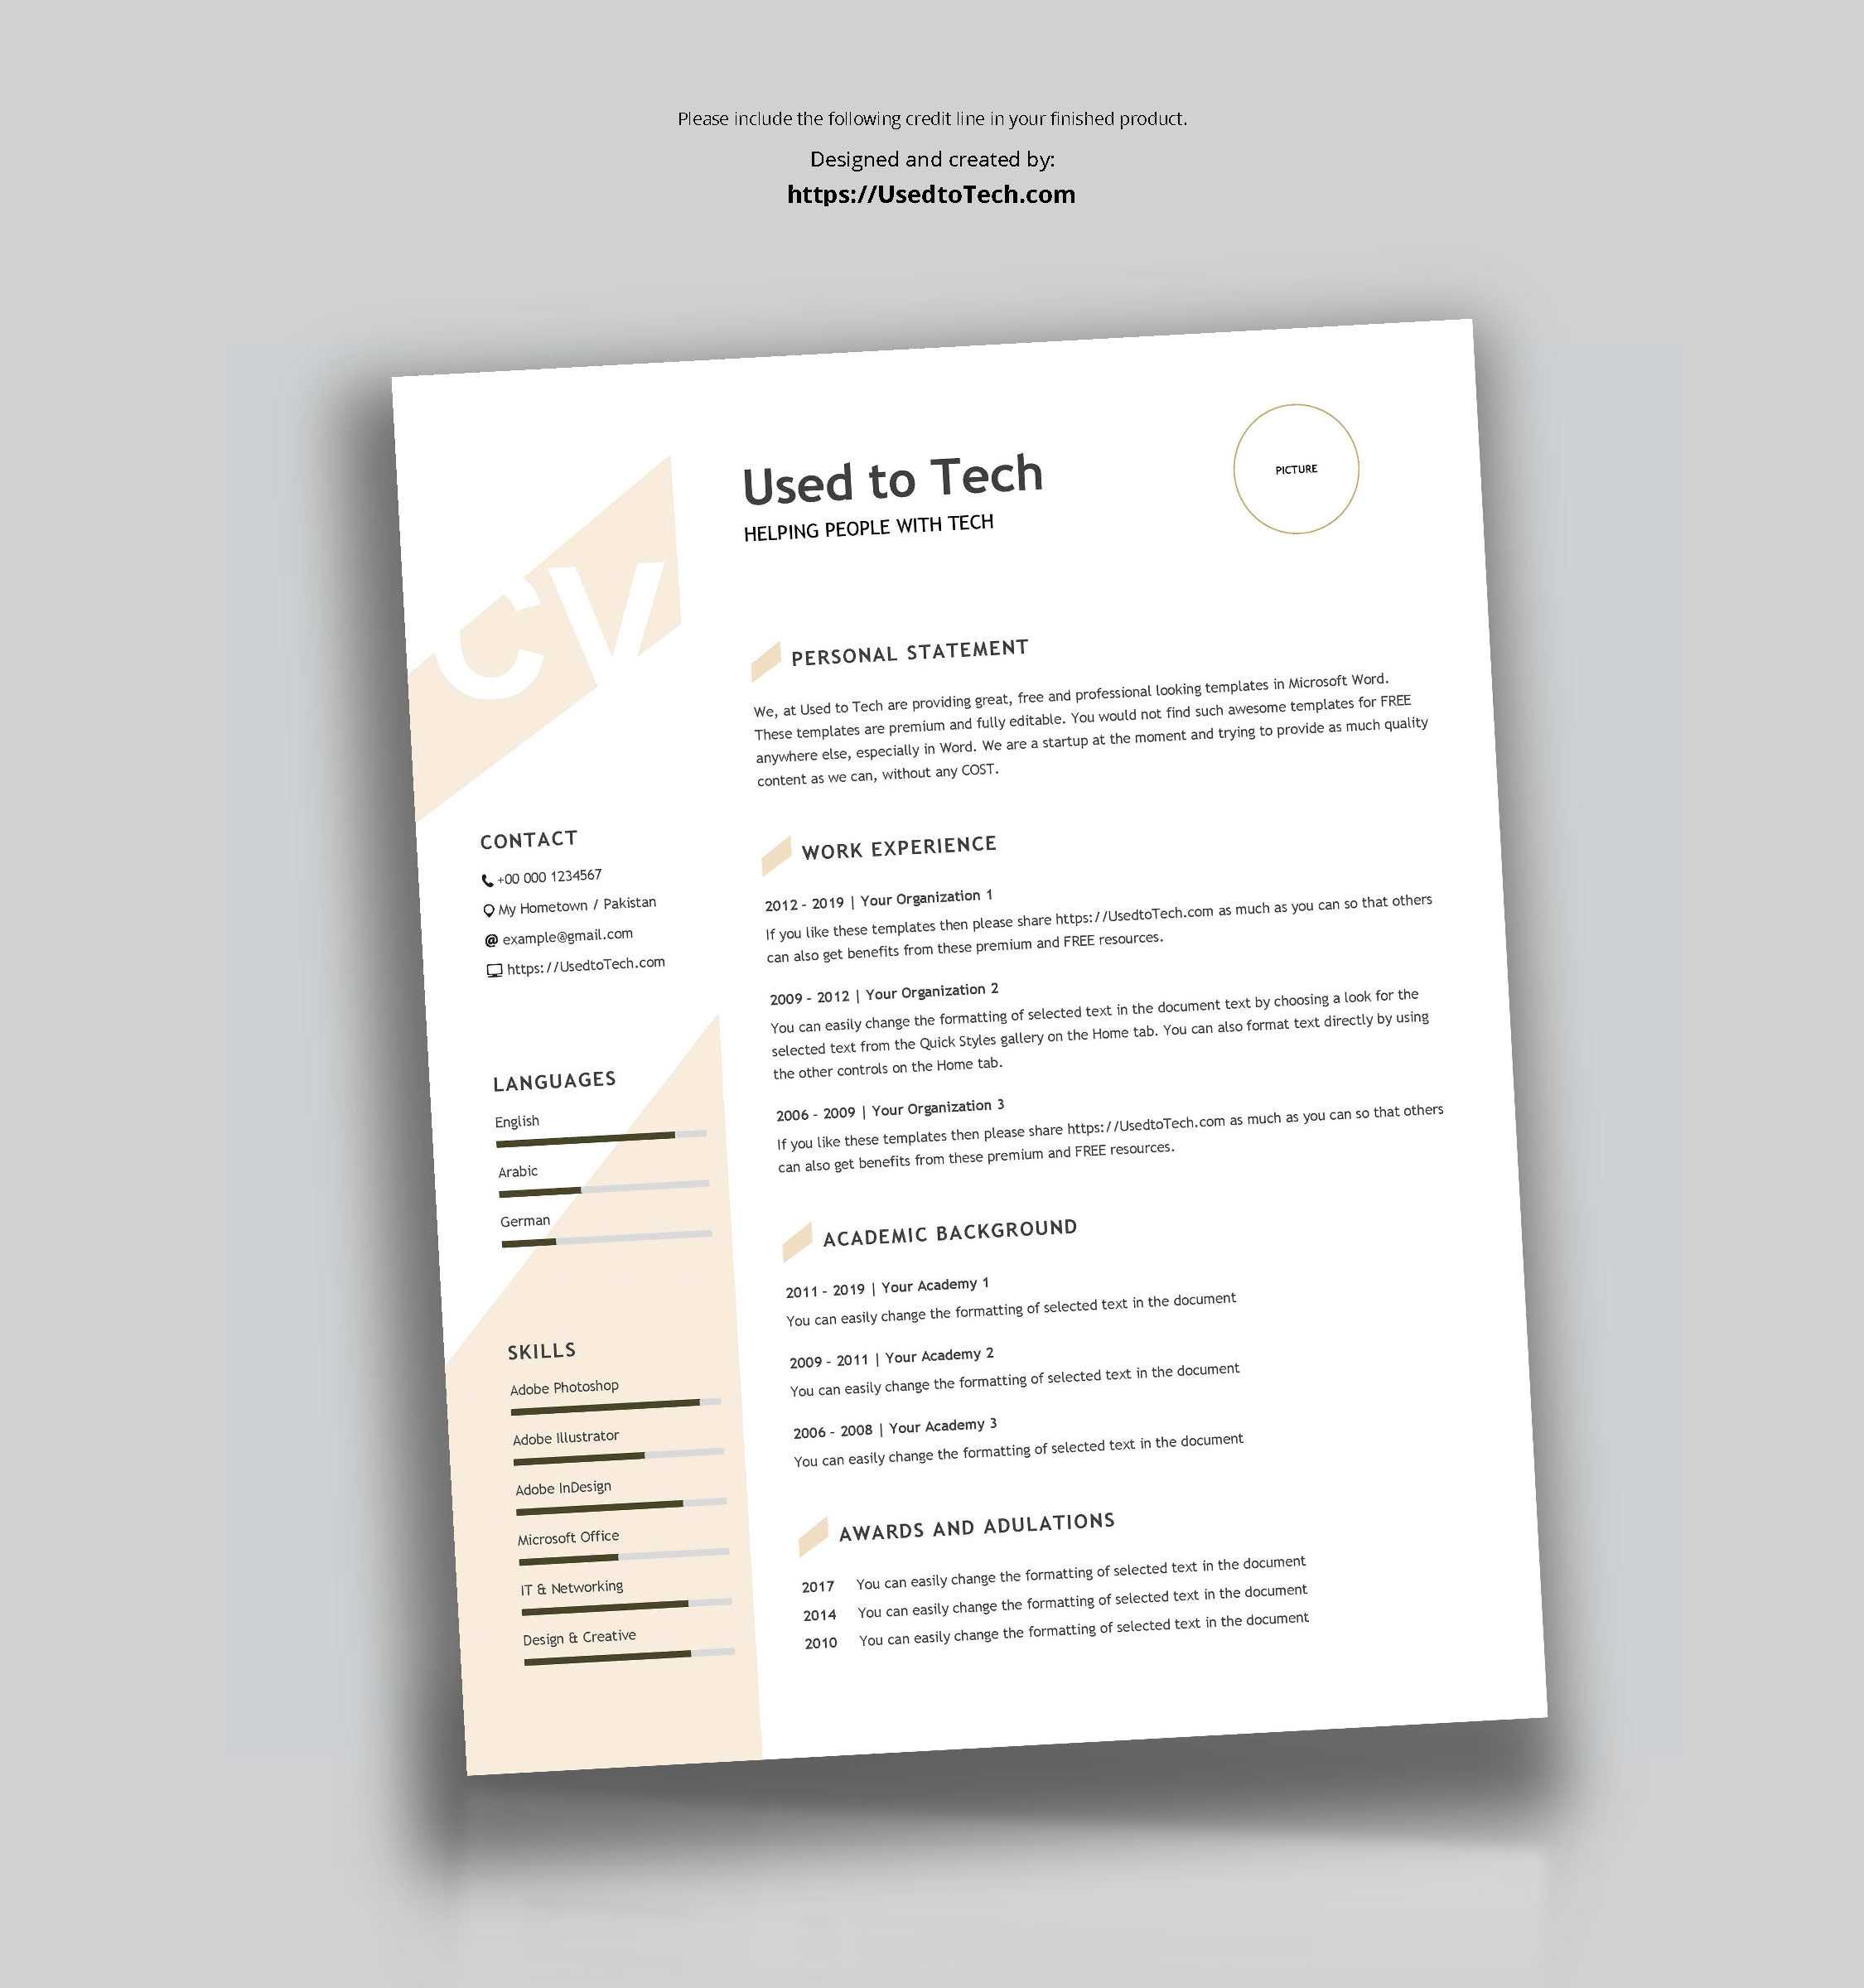 Modern Resume Template In Word Free - Used To Tech Inside How To Find A Resume Template On Word